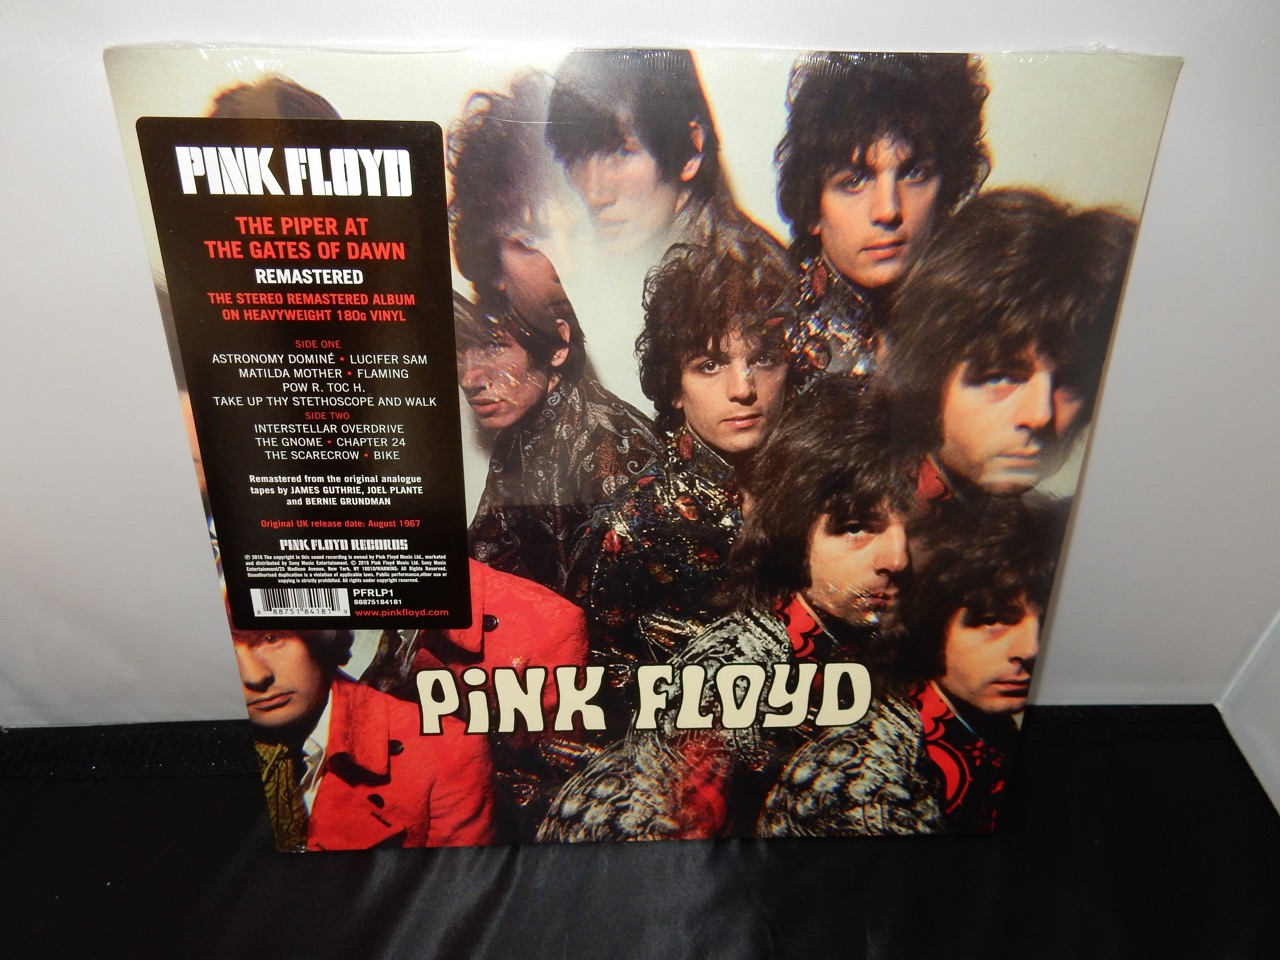 Pink Floyd The Piper At The Gates Of Dawn 180 Gram Vinyl